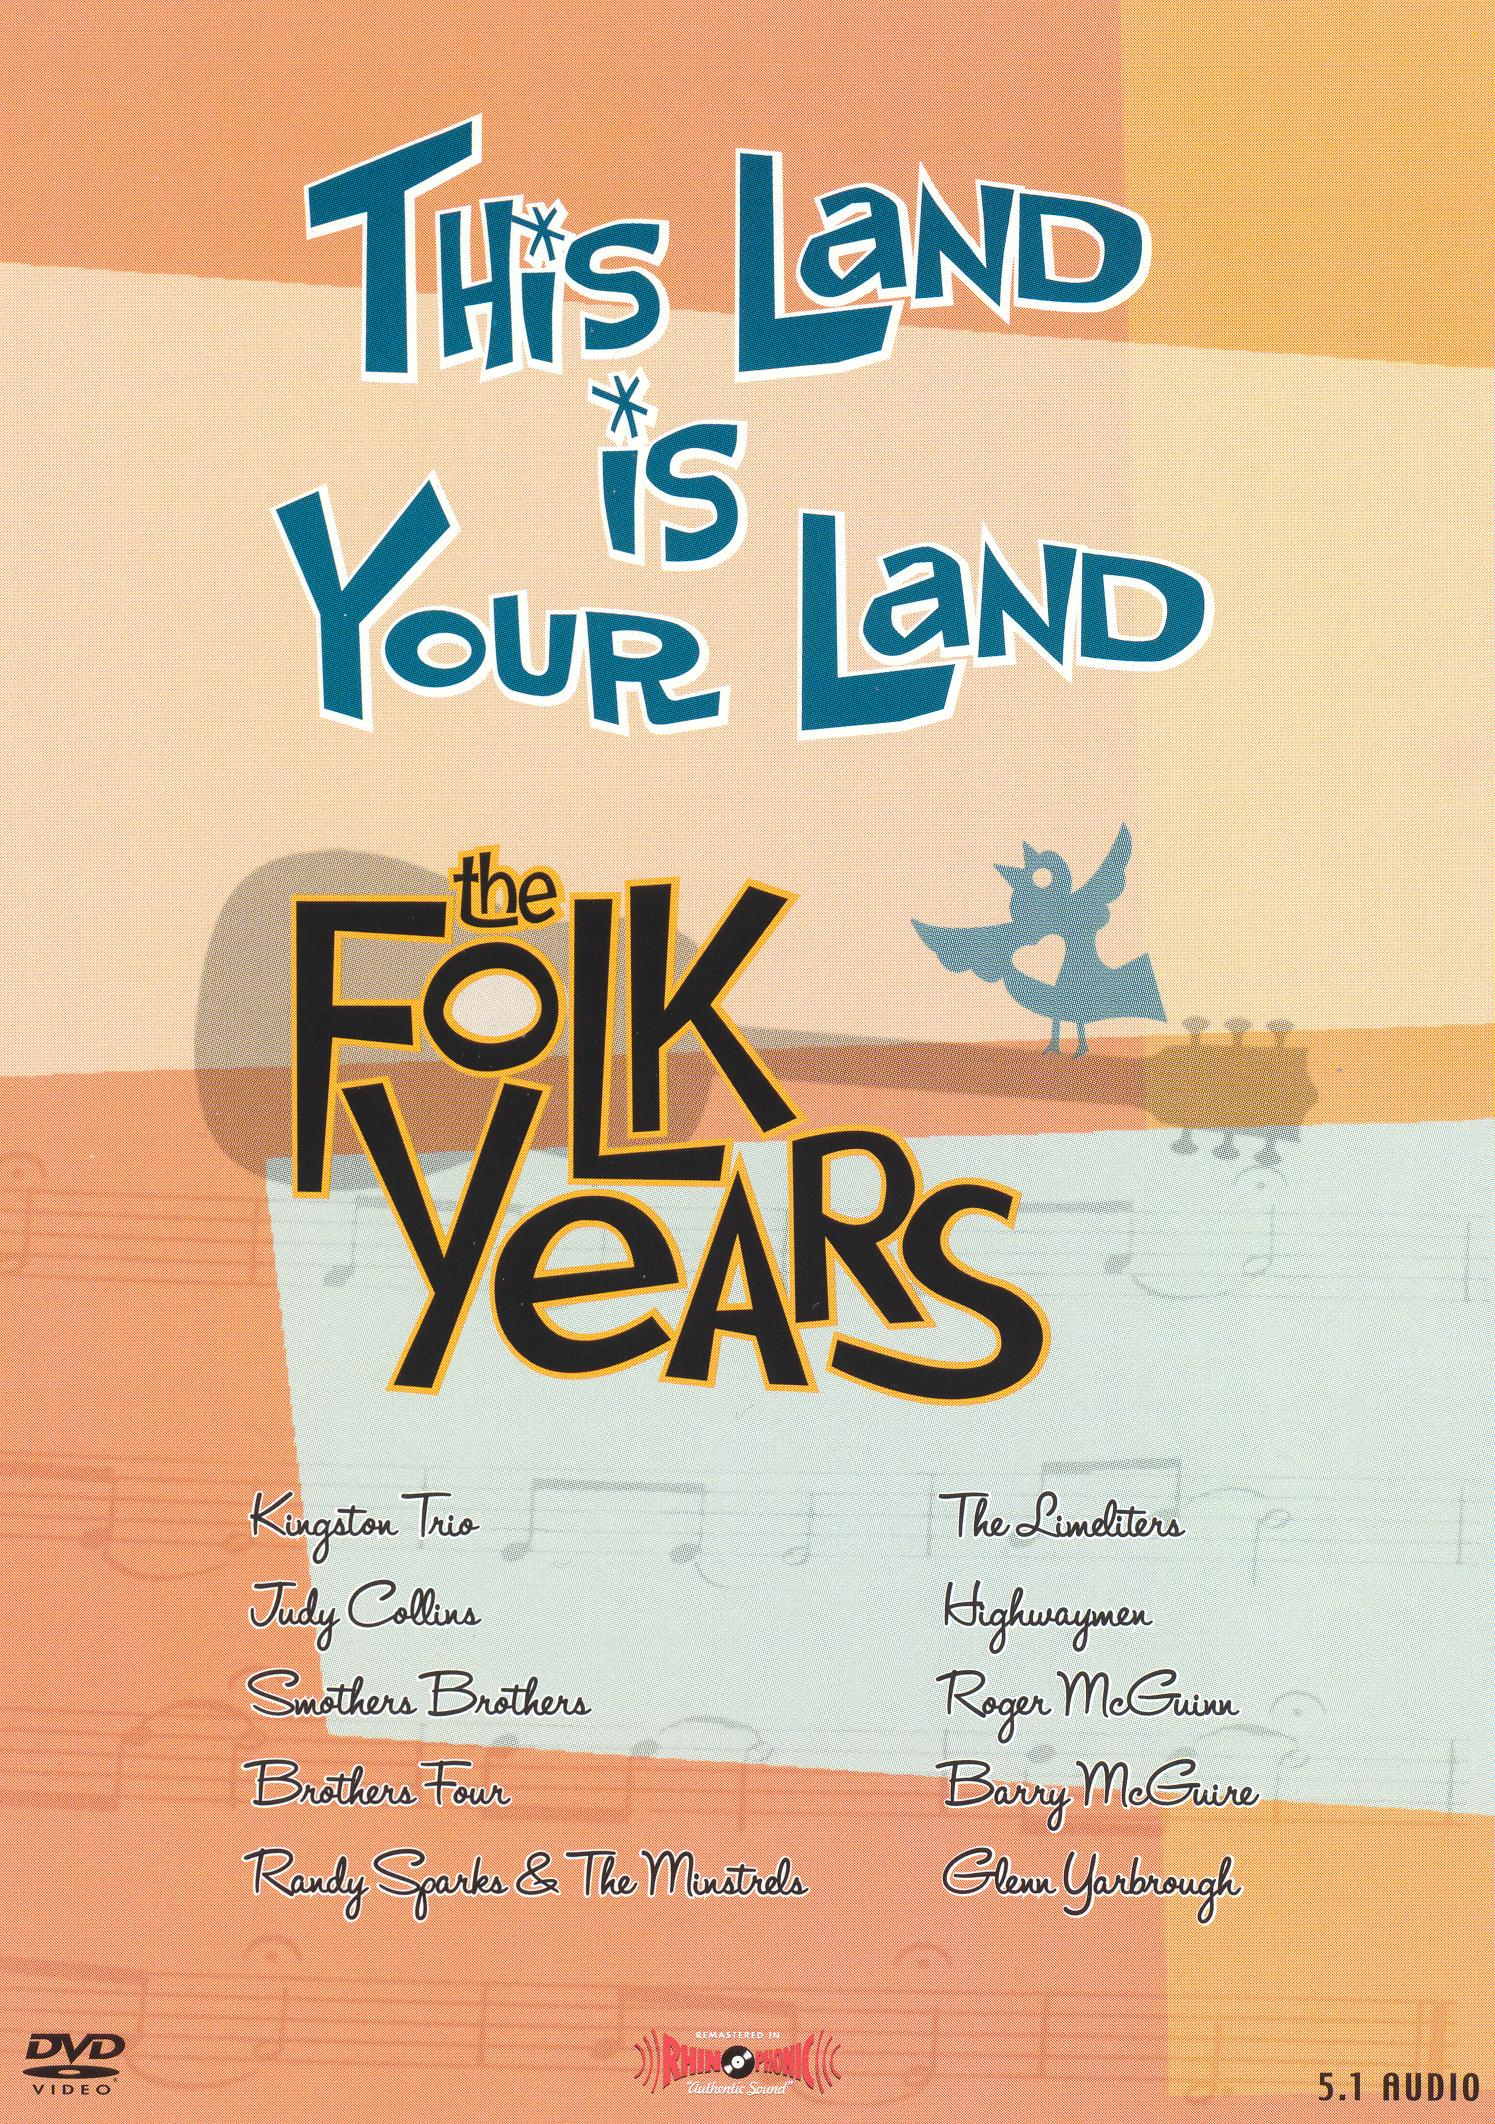 This Land Is Your Land: The Folk Years